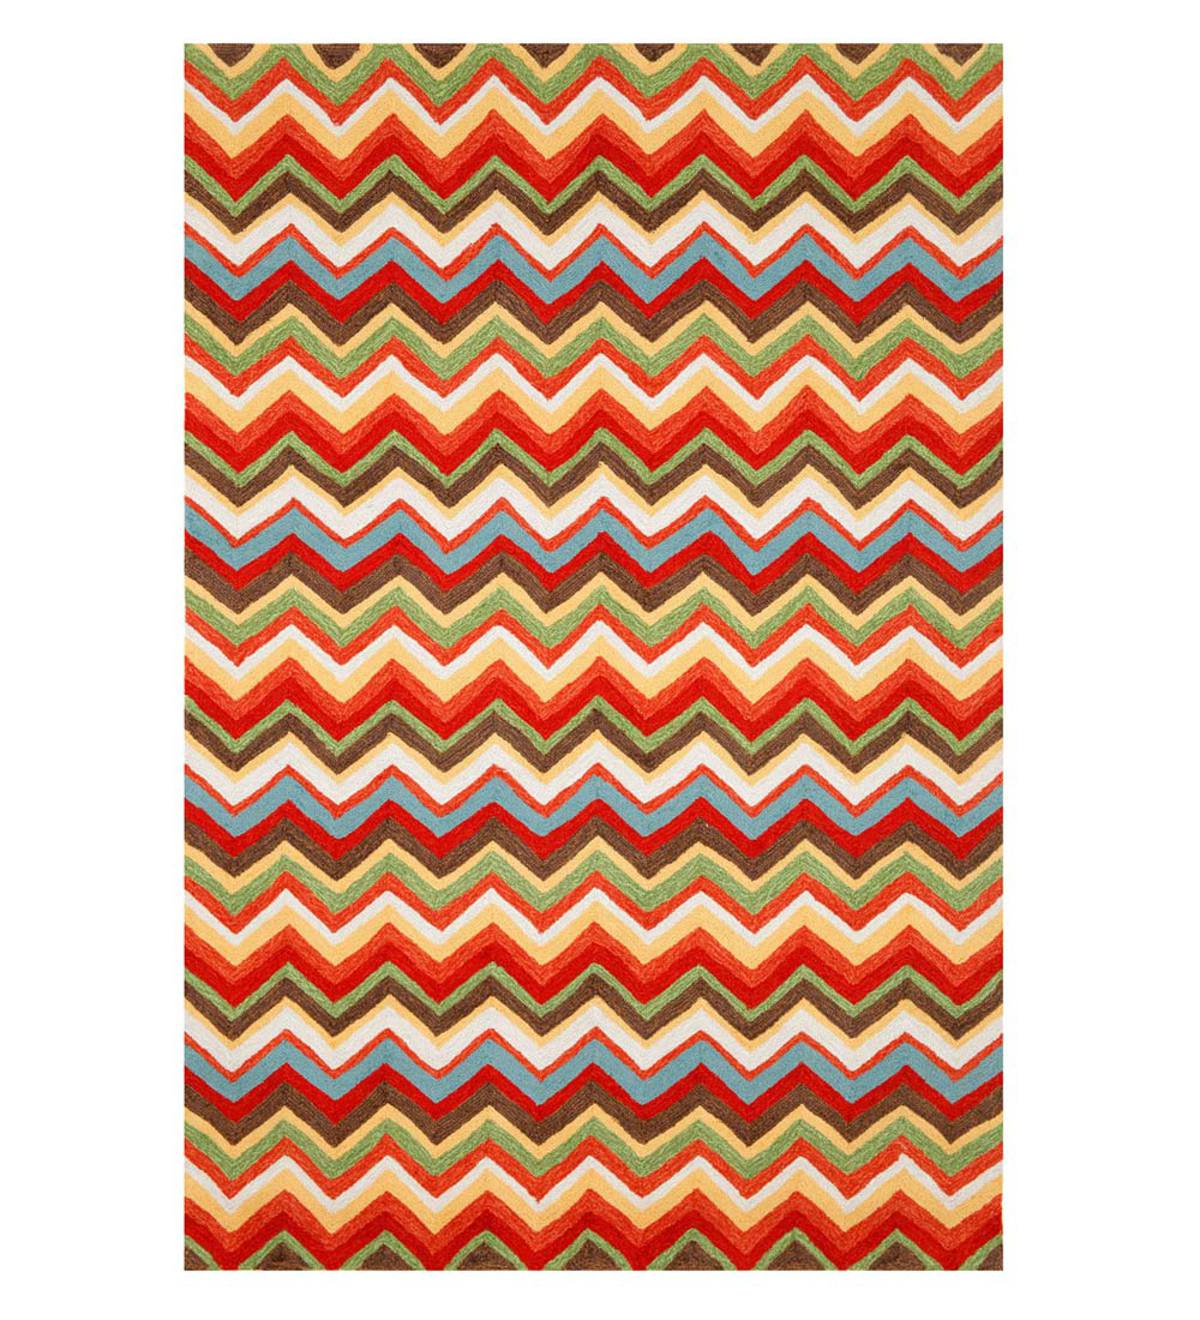 "ZigZag-Pattern Graphic Accent Rug, 8'3""W x 11'6""L - Sun"